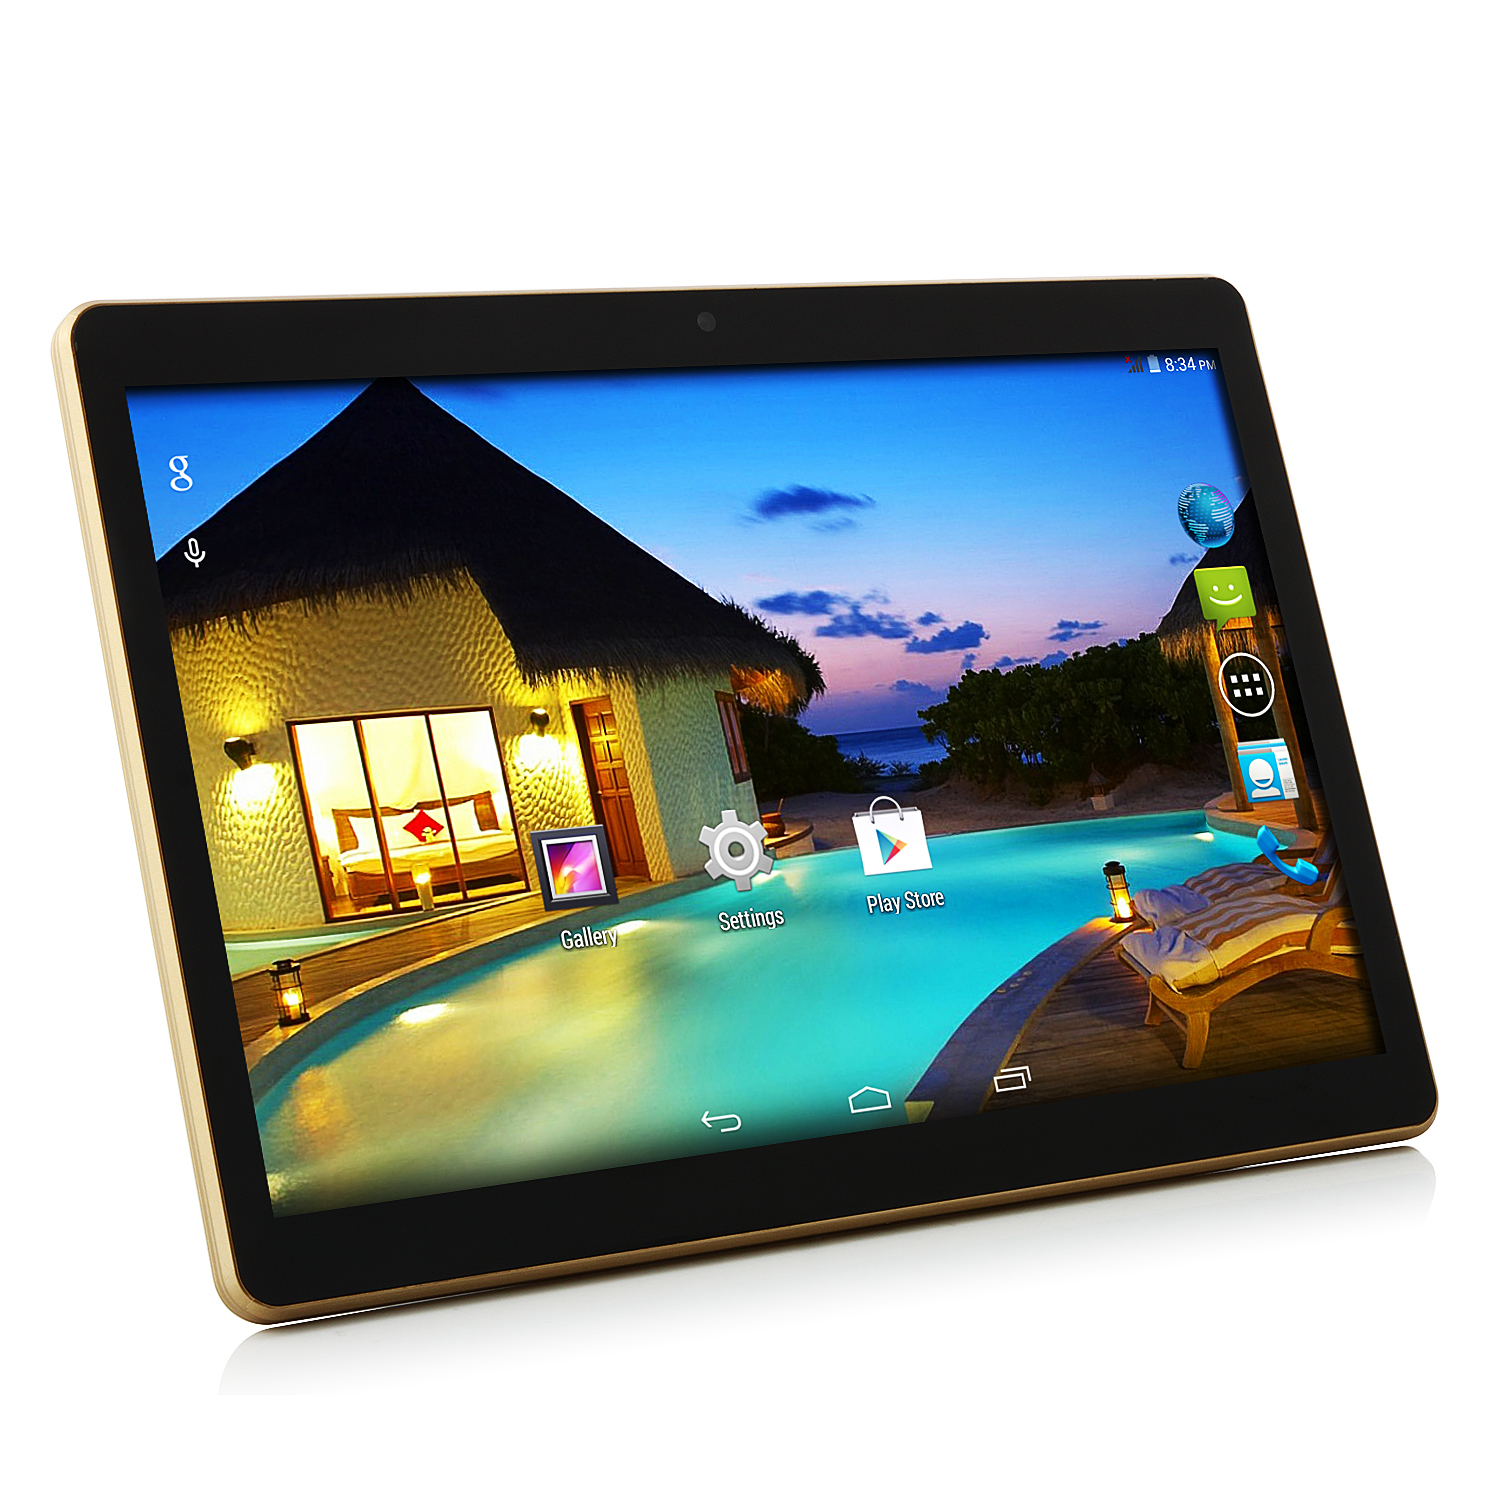 "MTP342 I960 3G Tablet PC MTK6582M Quad Core 9.7"" Android 4.4 IPS 1GB 8GB Black"